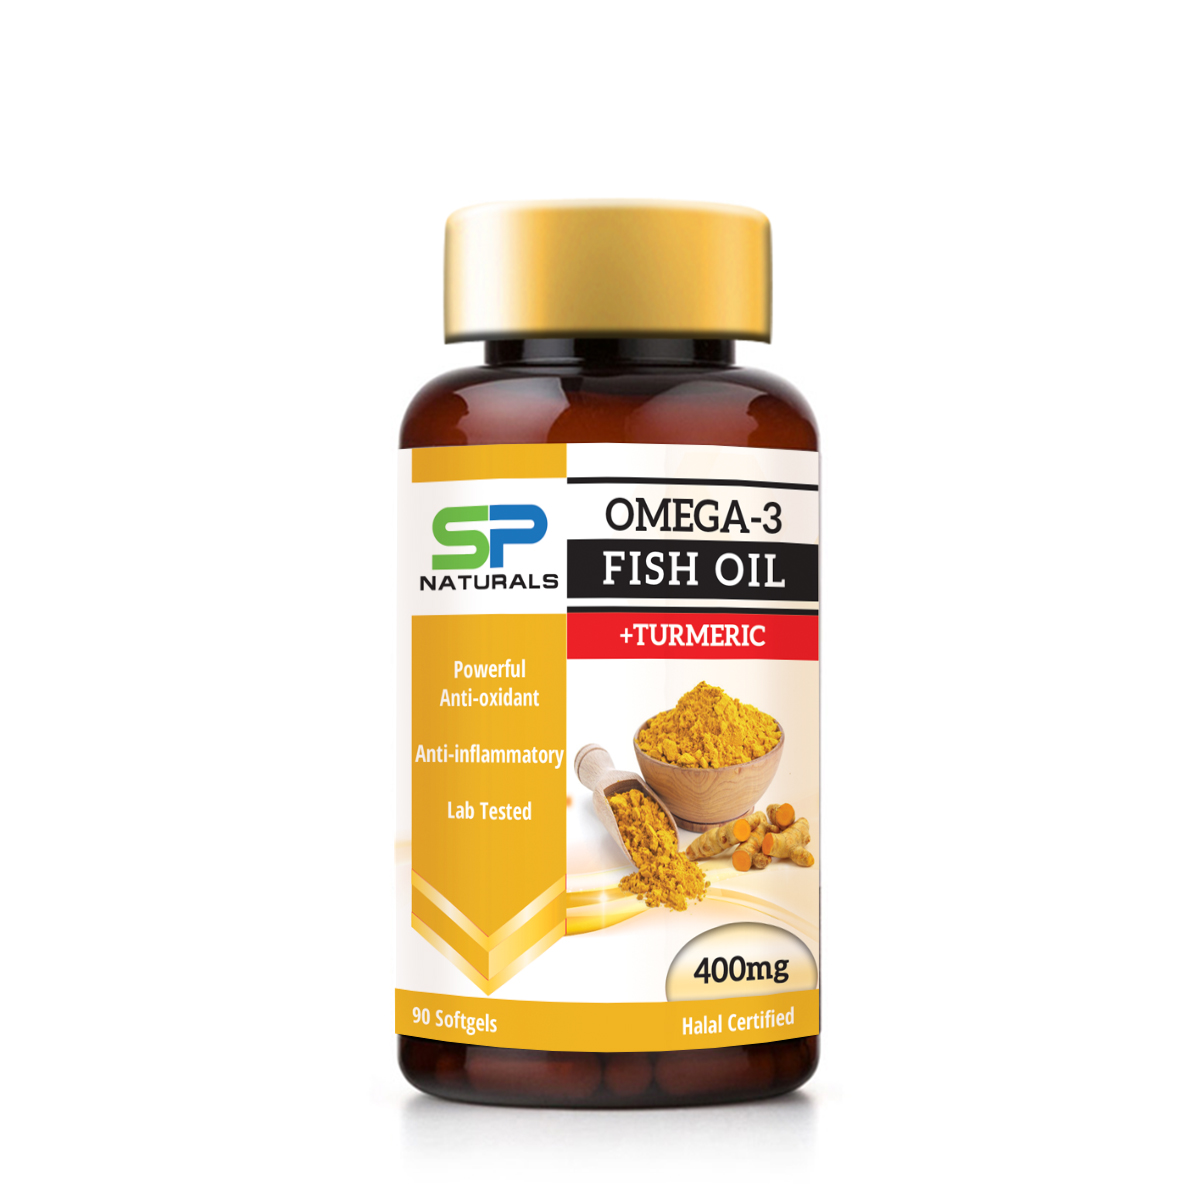 sp naturals Fish Oil +turmeric mockup copy